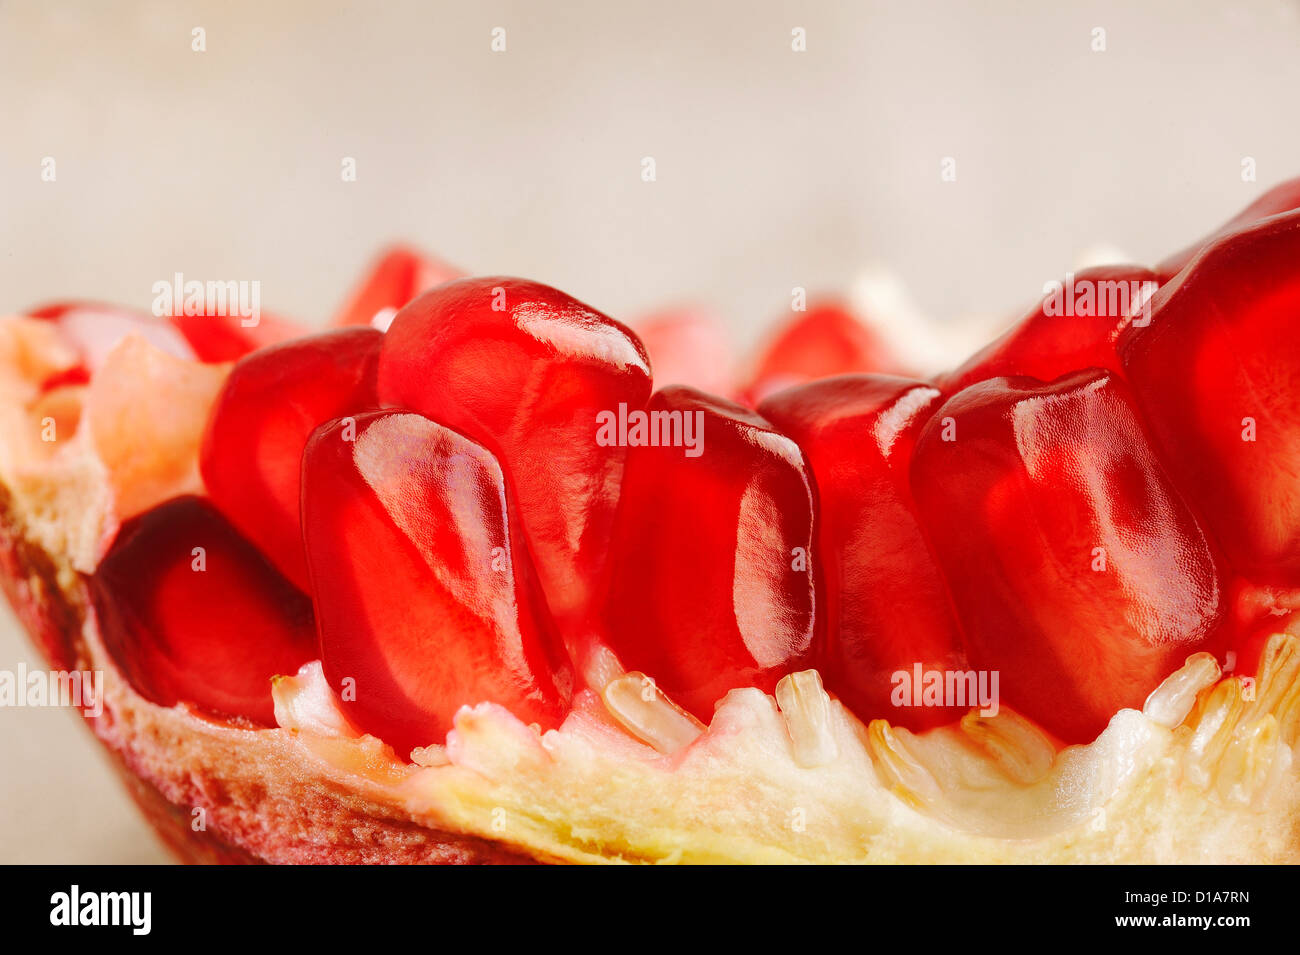 Pomegranate fruits - Stock Image